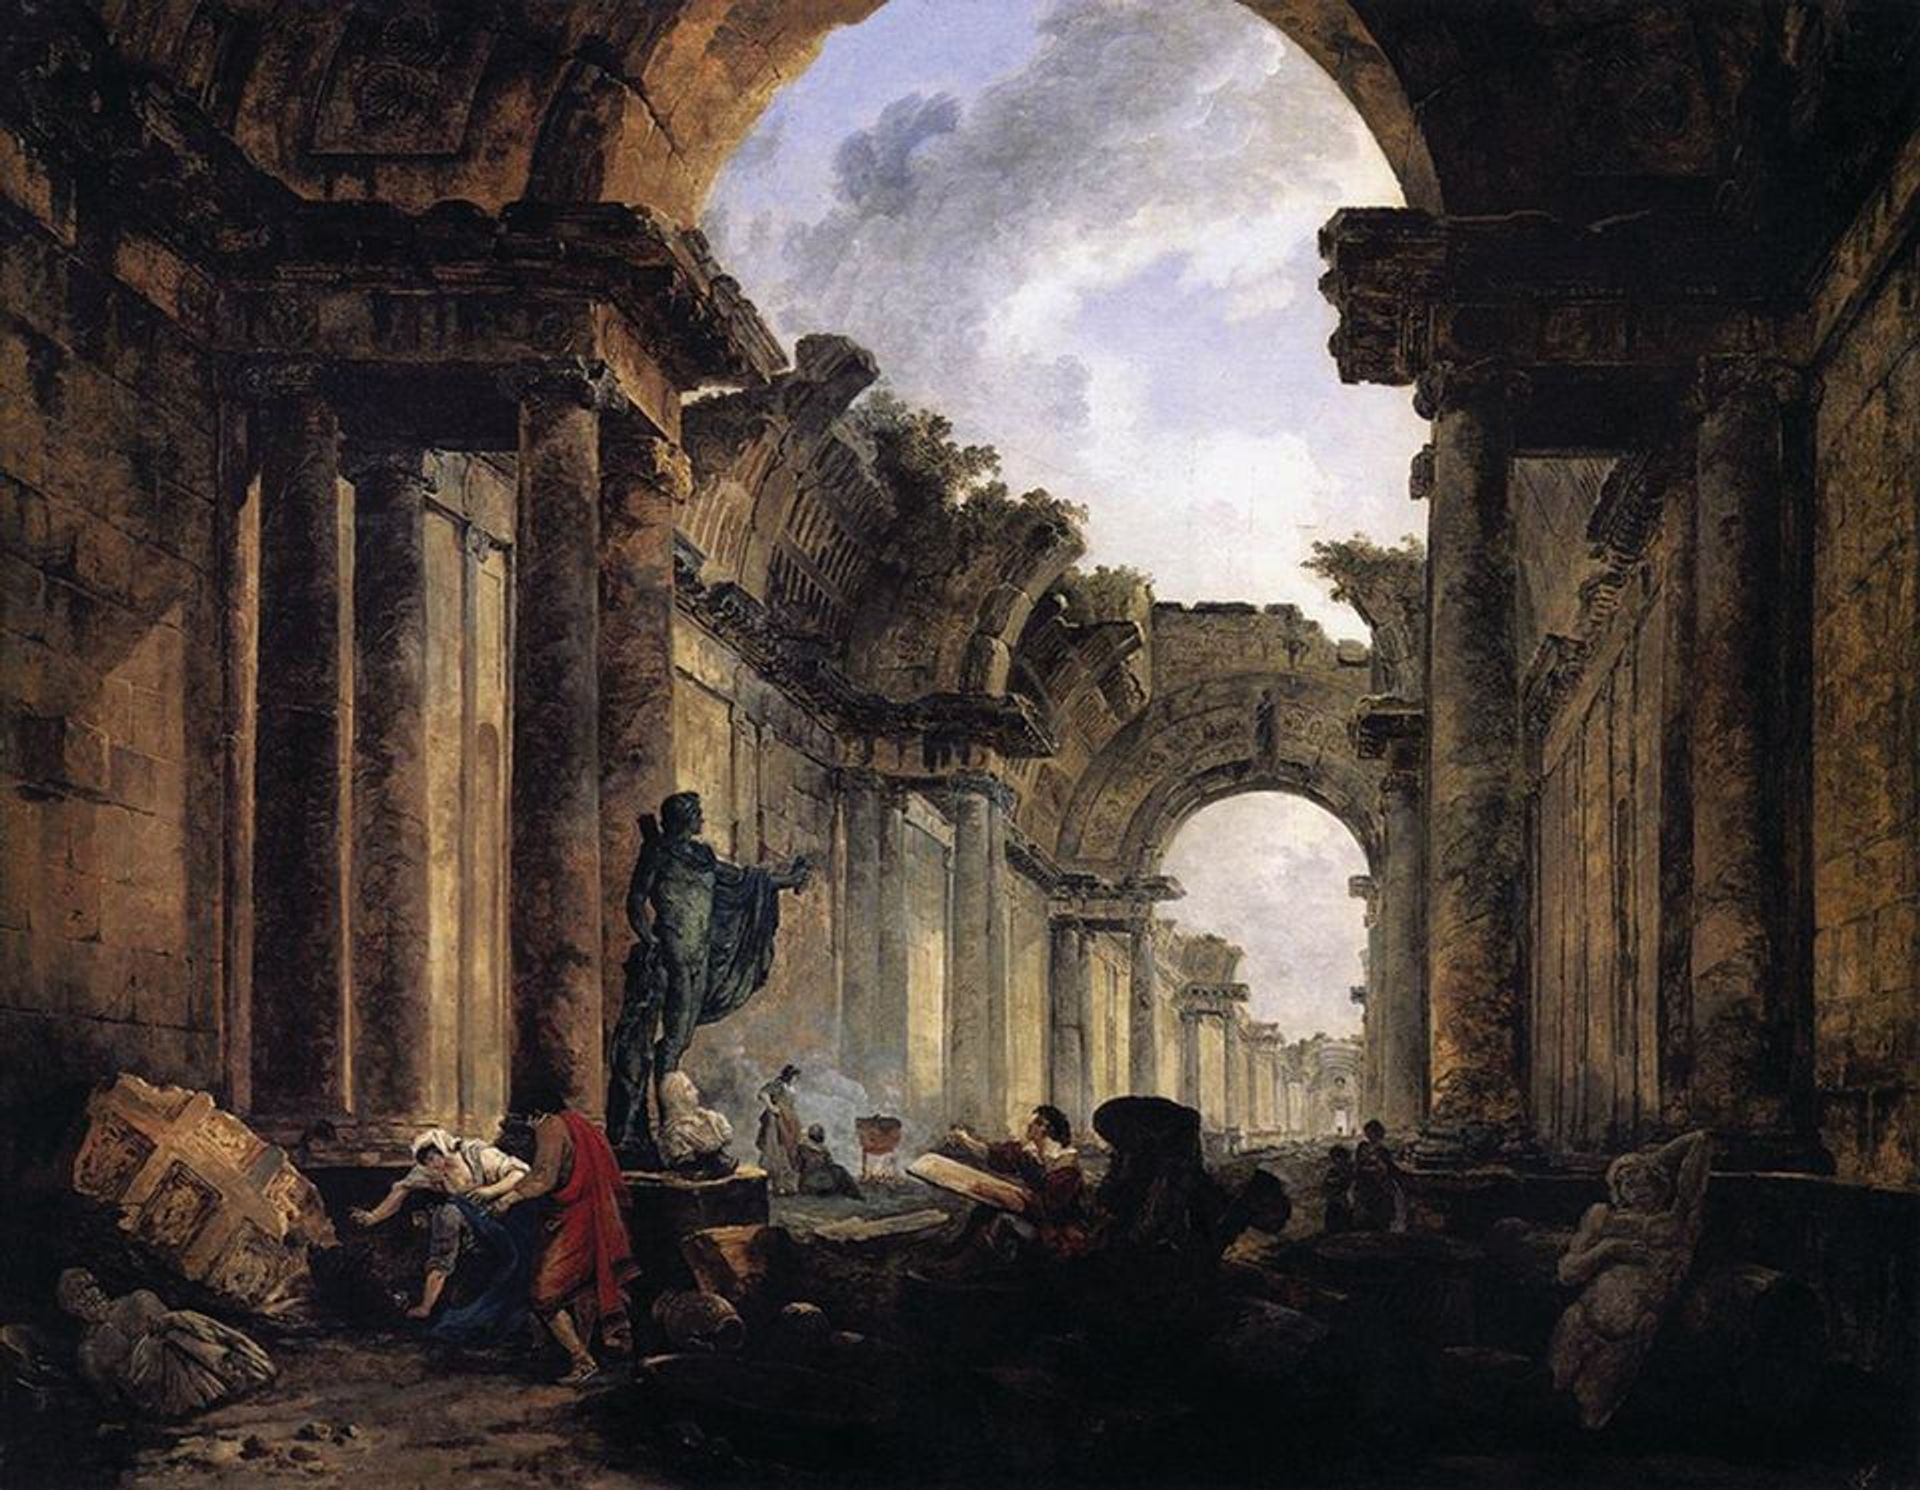 Climate apocalypse will hit museums too: Hubert Robert's Imaginary View of the Grande Galerie in the Louvre in Ruins (1796) © Musée du Louvre